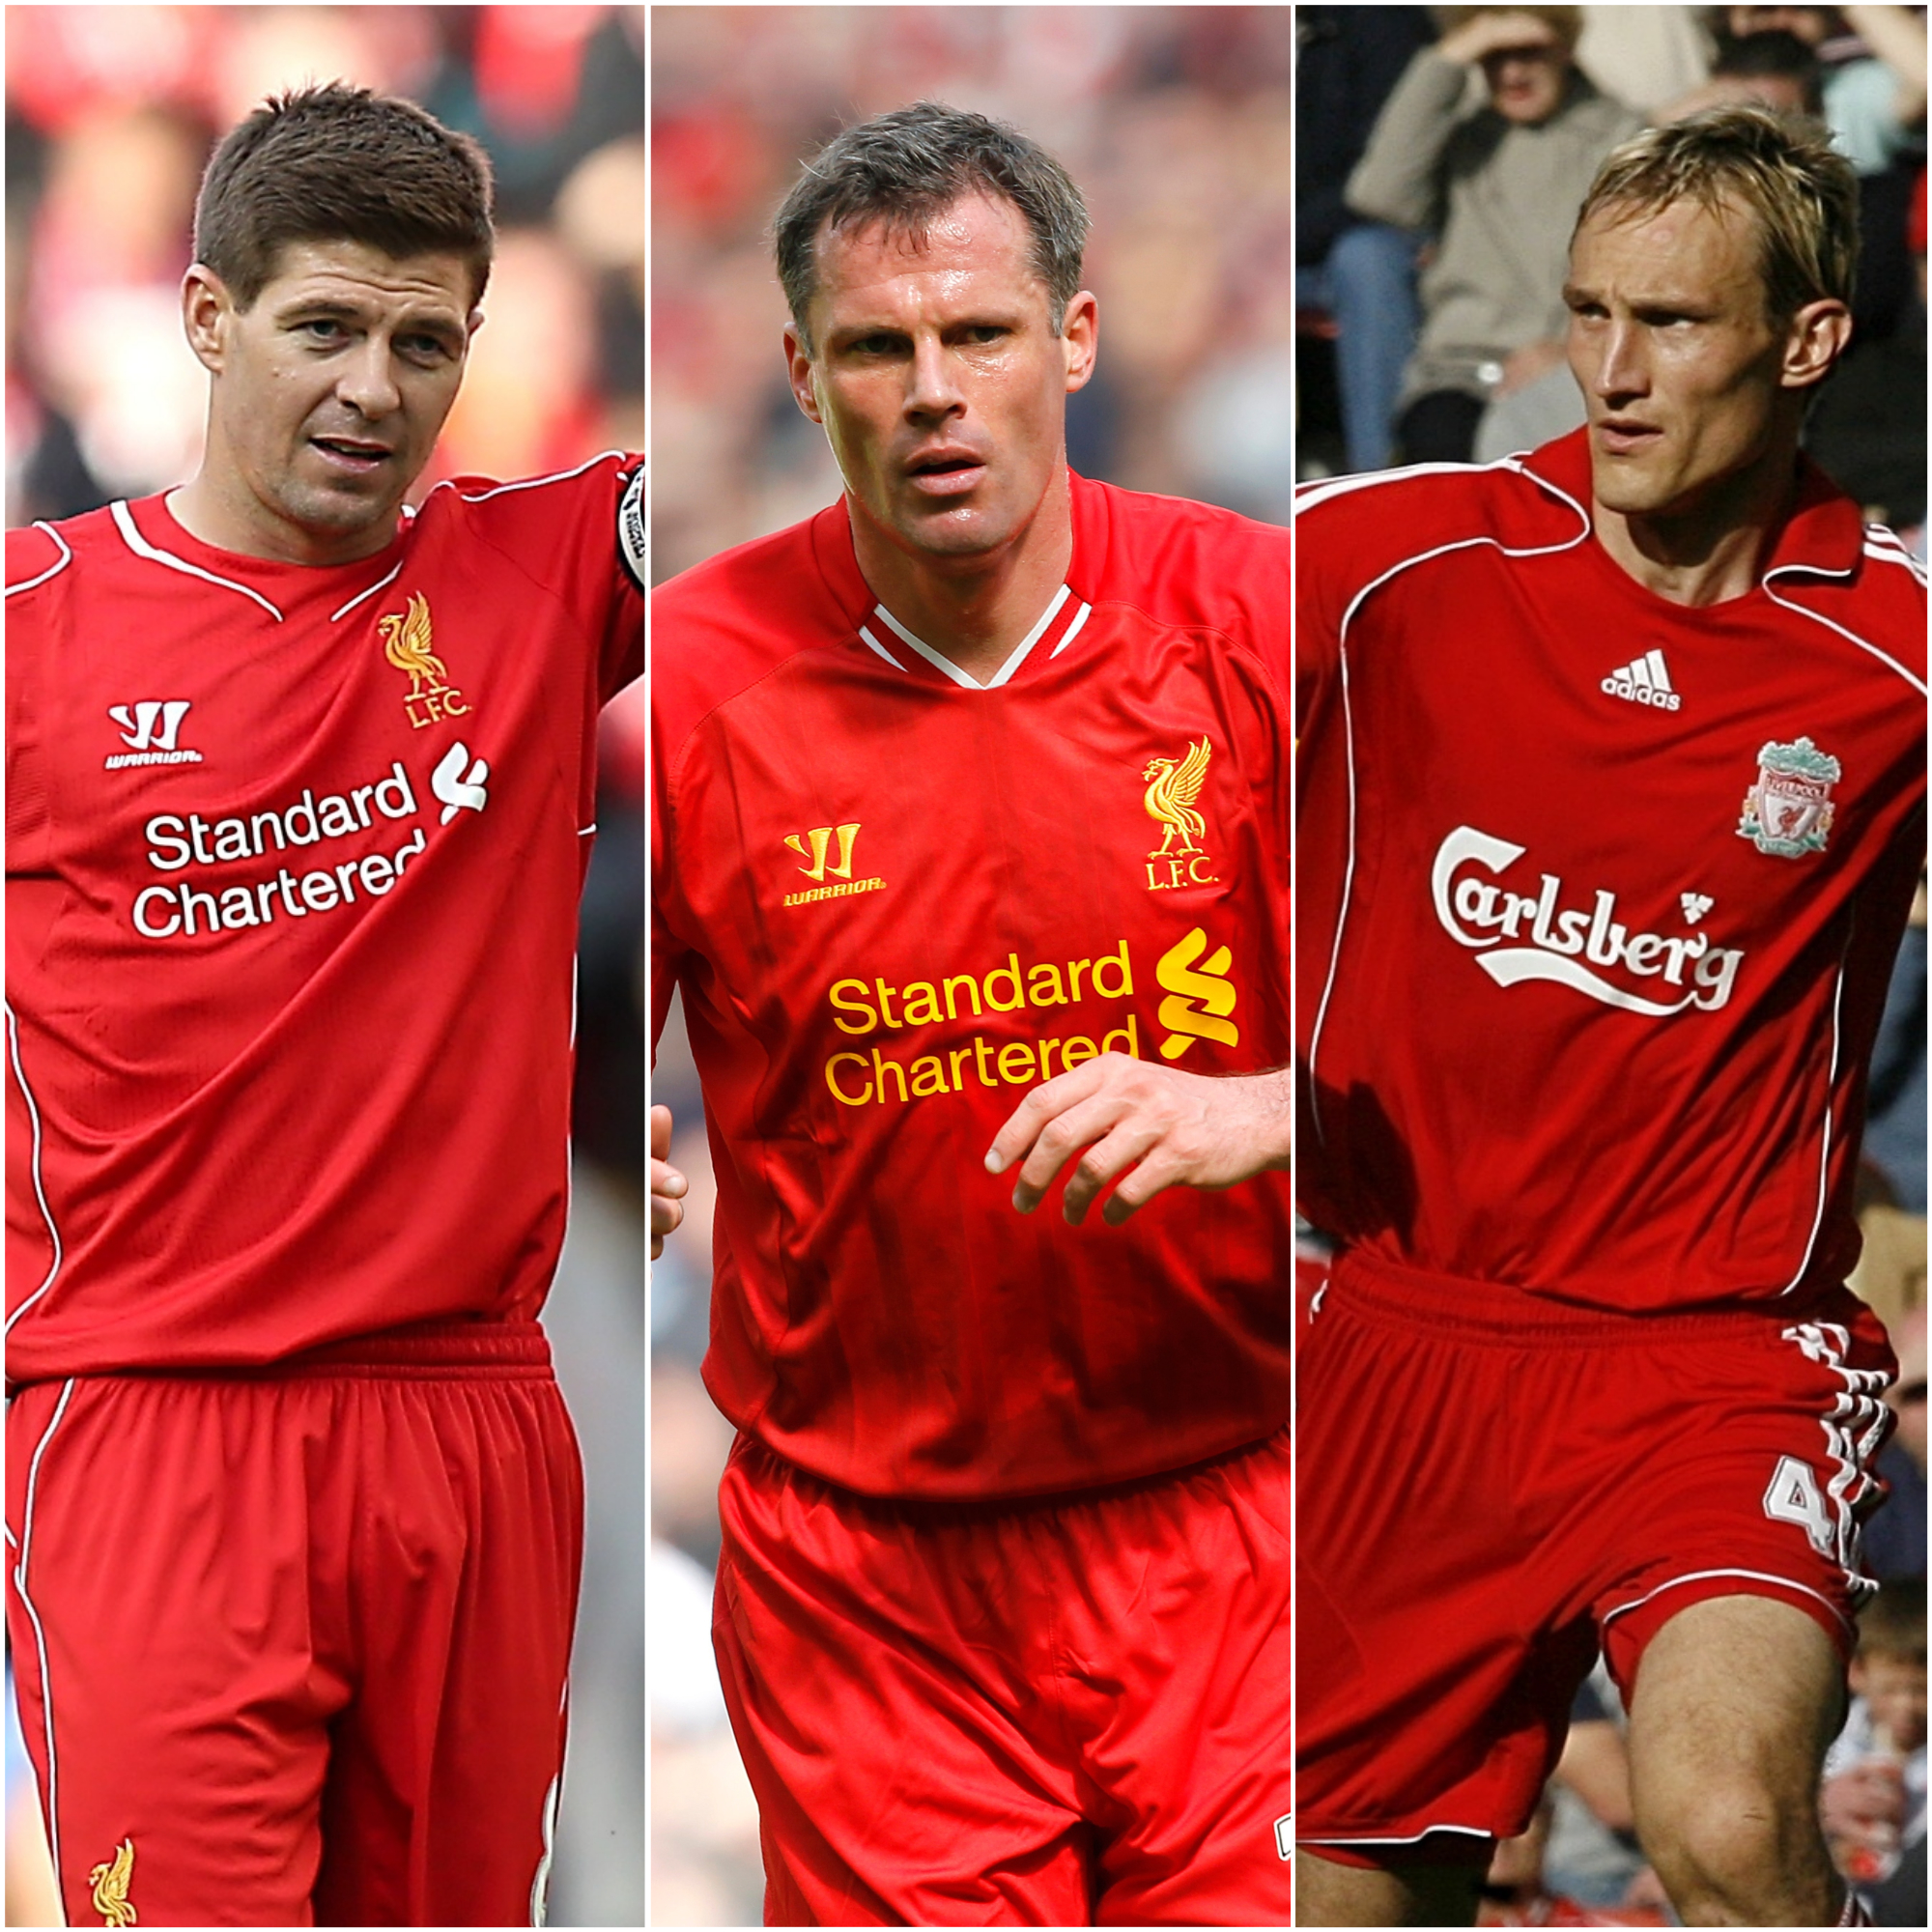 Steven Gerrard, Jamie Carragher and Sami Hyypia, l-r